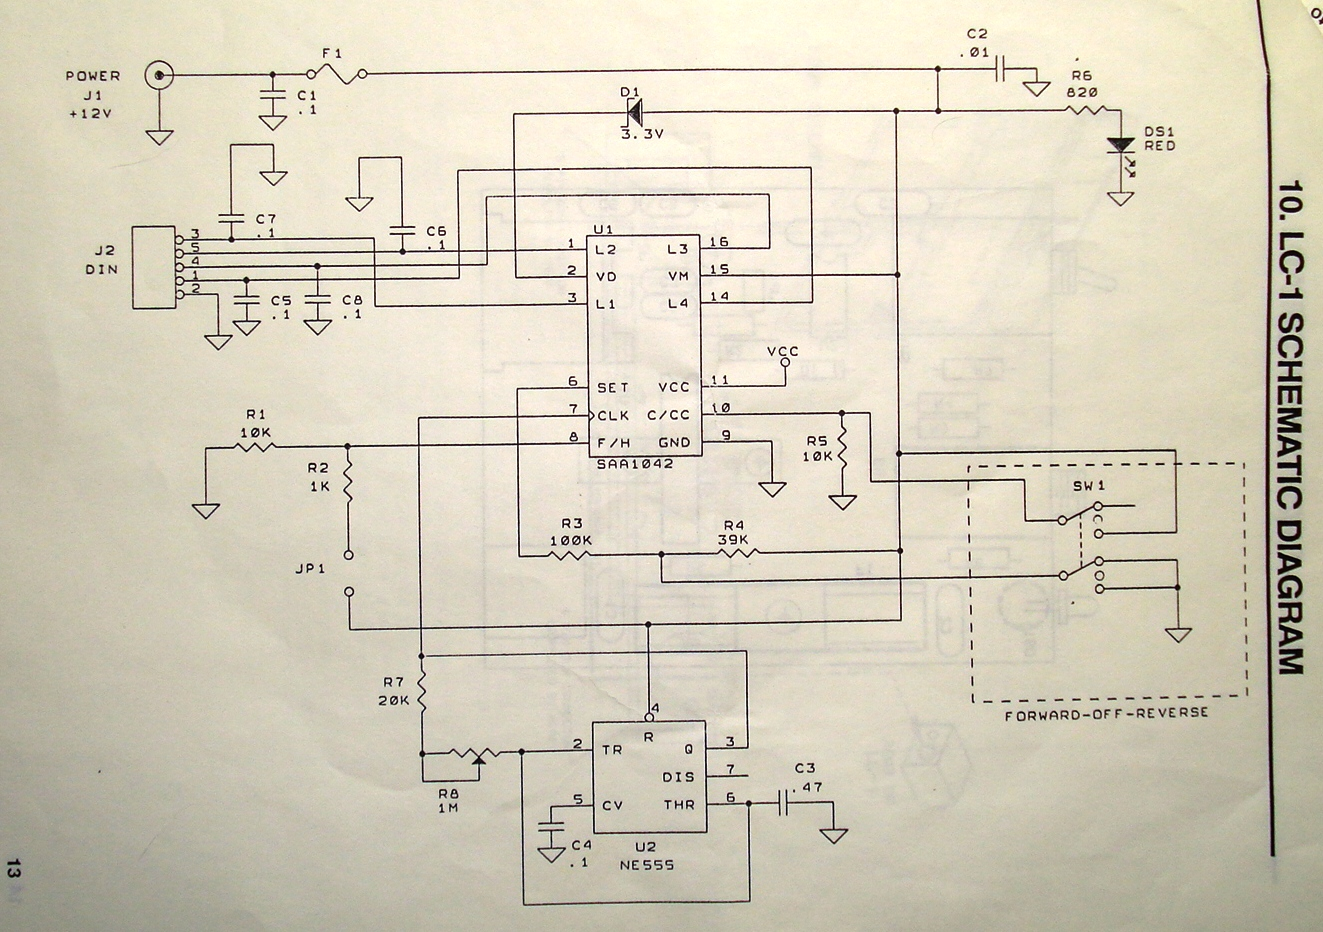 Ic 555 Circuit Diagram Stepper Motor Control Using Get To Know Your And The Saa1042 Driver